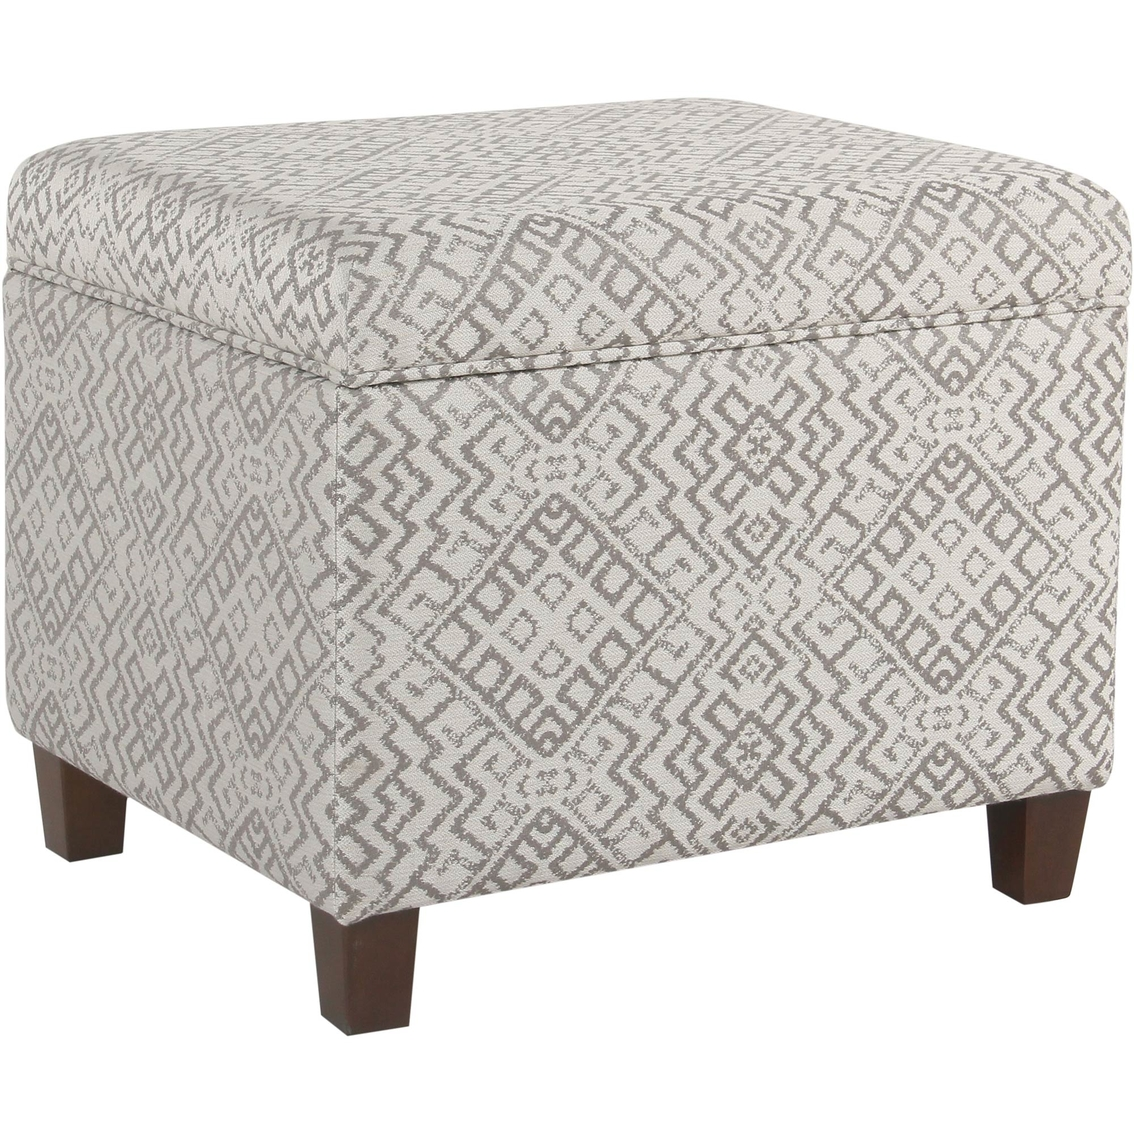 Peachy Kinfine Medium Storage Ottoman Ottomans Home Forskolin Free Trial Chair Design Images Forskolin Free Trialorg